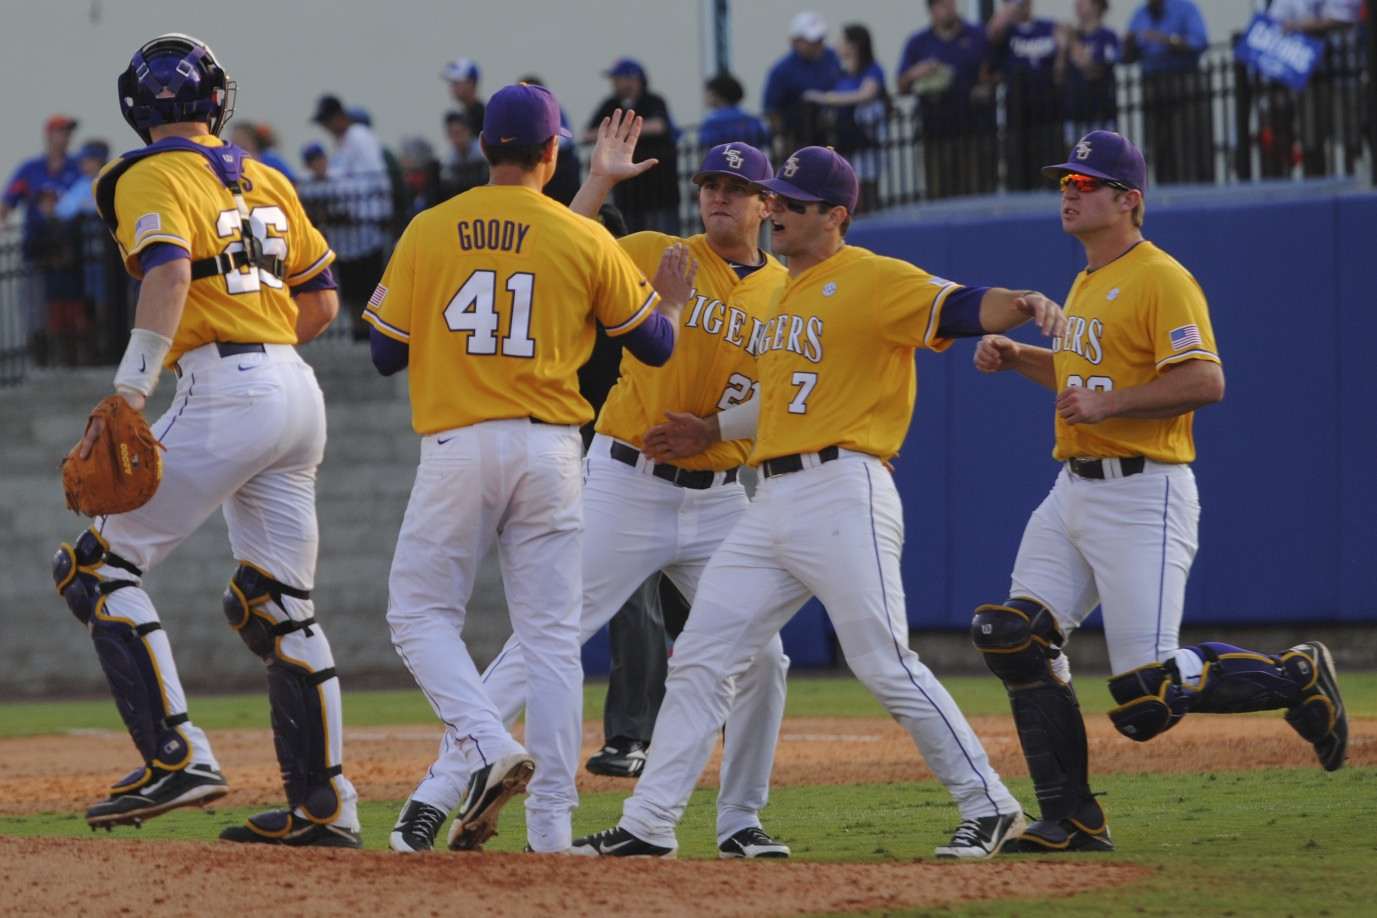 LSU comes back from a  2-7 deficit in the third to take the victory,  8-7.